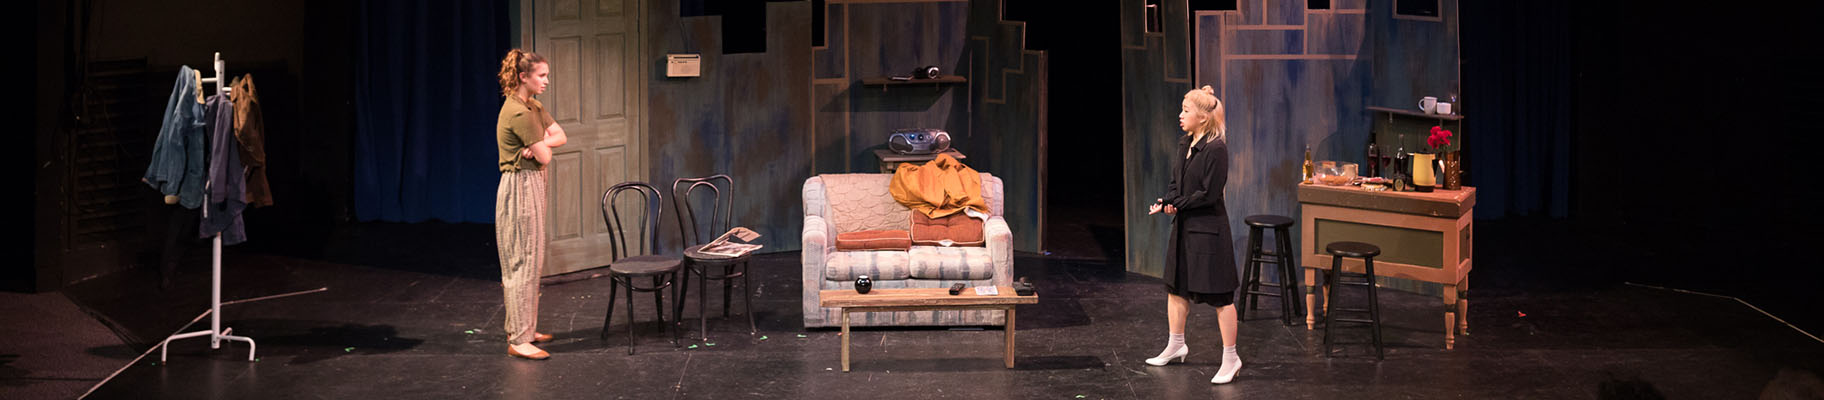 Directors' Workshop Festival Delivers a Great Evening of Theater 4